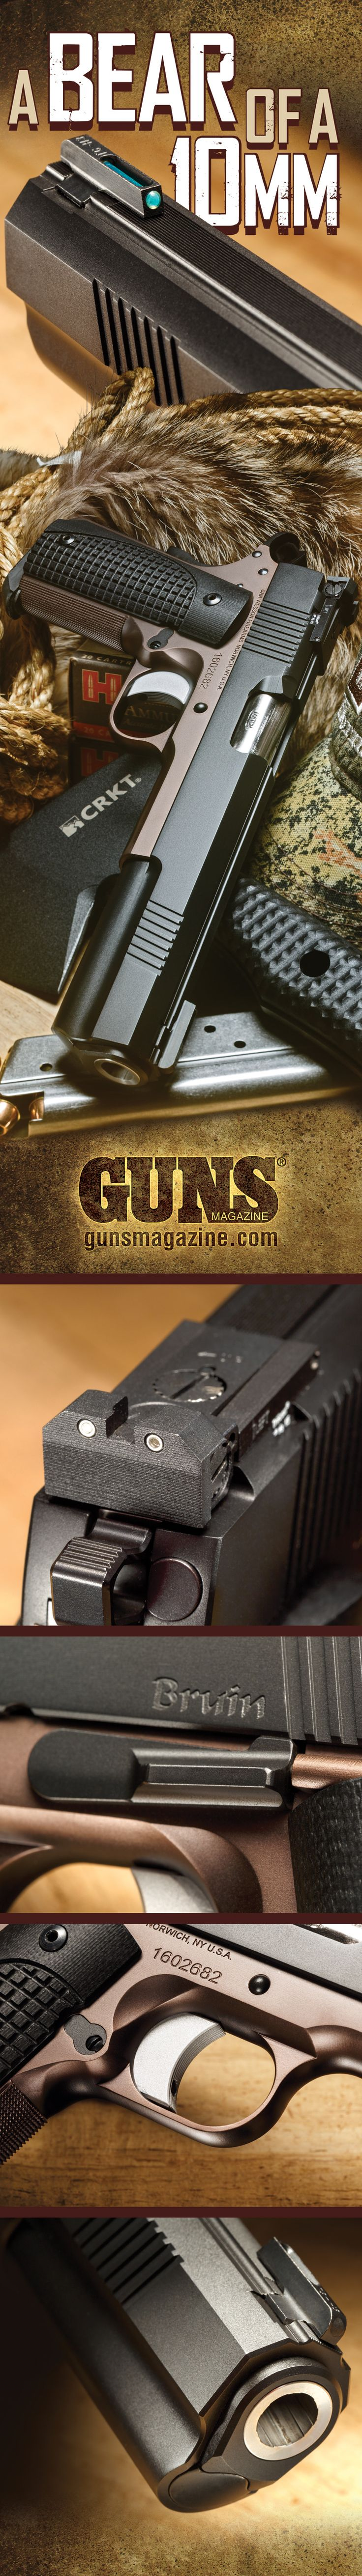 69 best Sig Sauer images on Pinterest | Revolvers, Weapons guns and ...